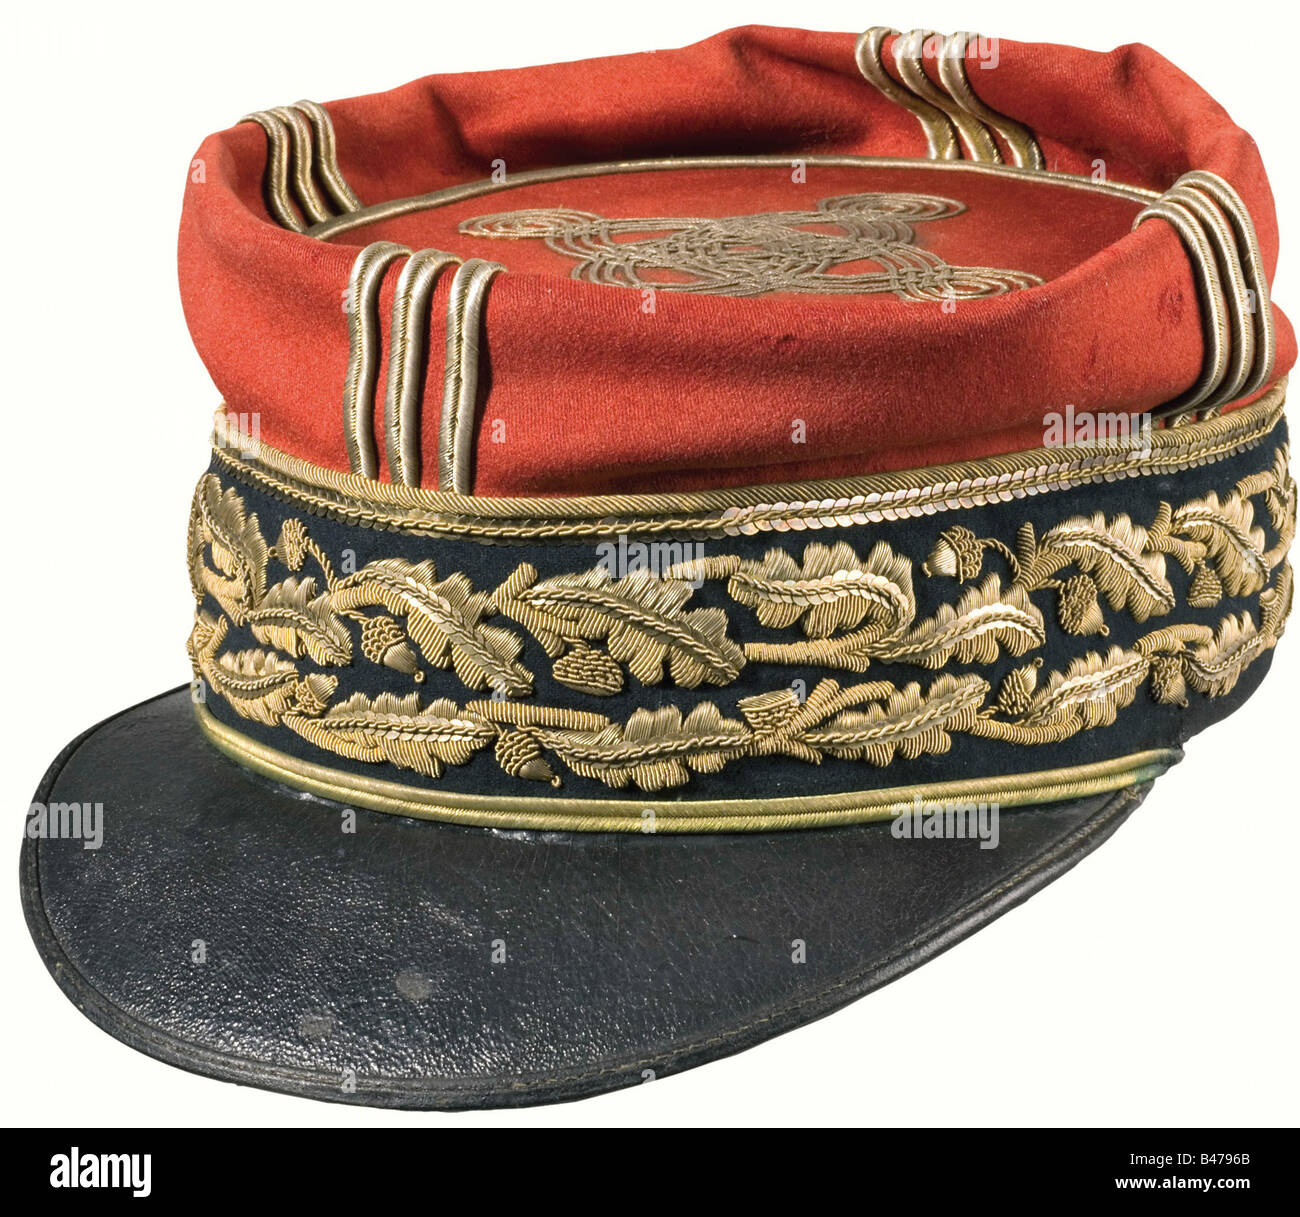 Philippe Pétain - Képi as Général de Division (Major General)., A black band with two rows of - Stock Image